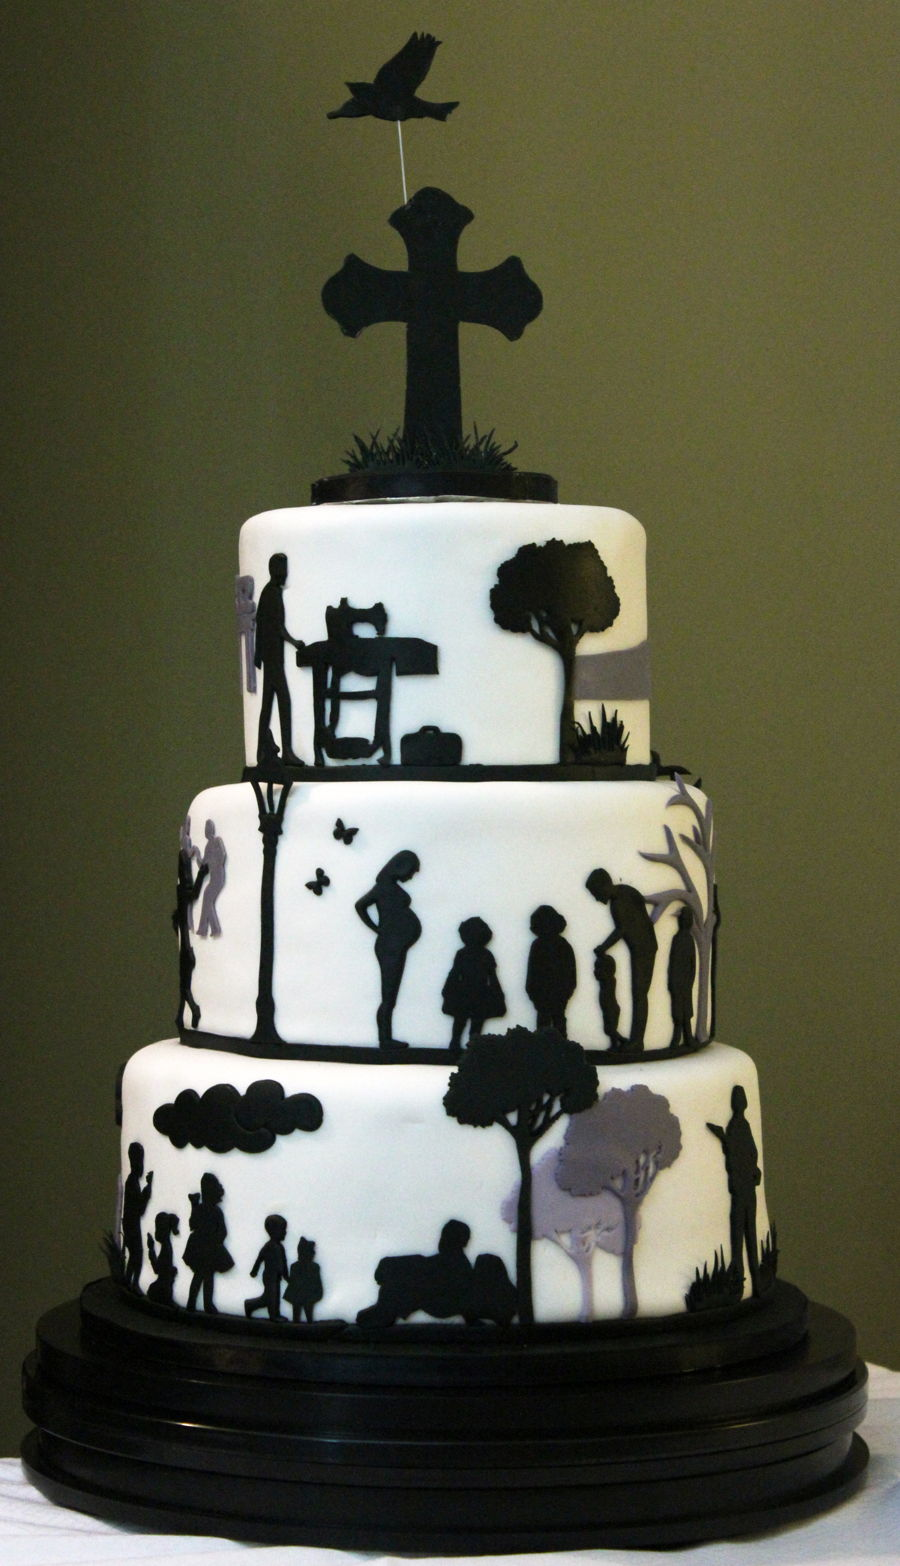 Remembrance Silhouette Cake Cakecentral Com